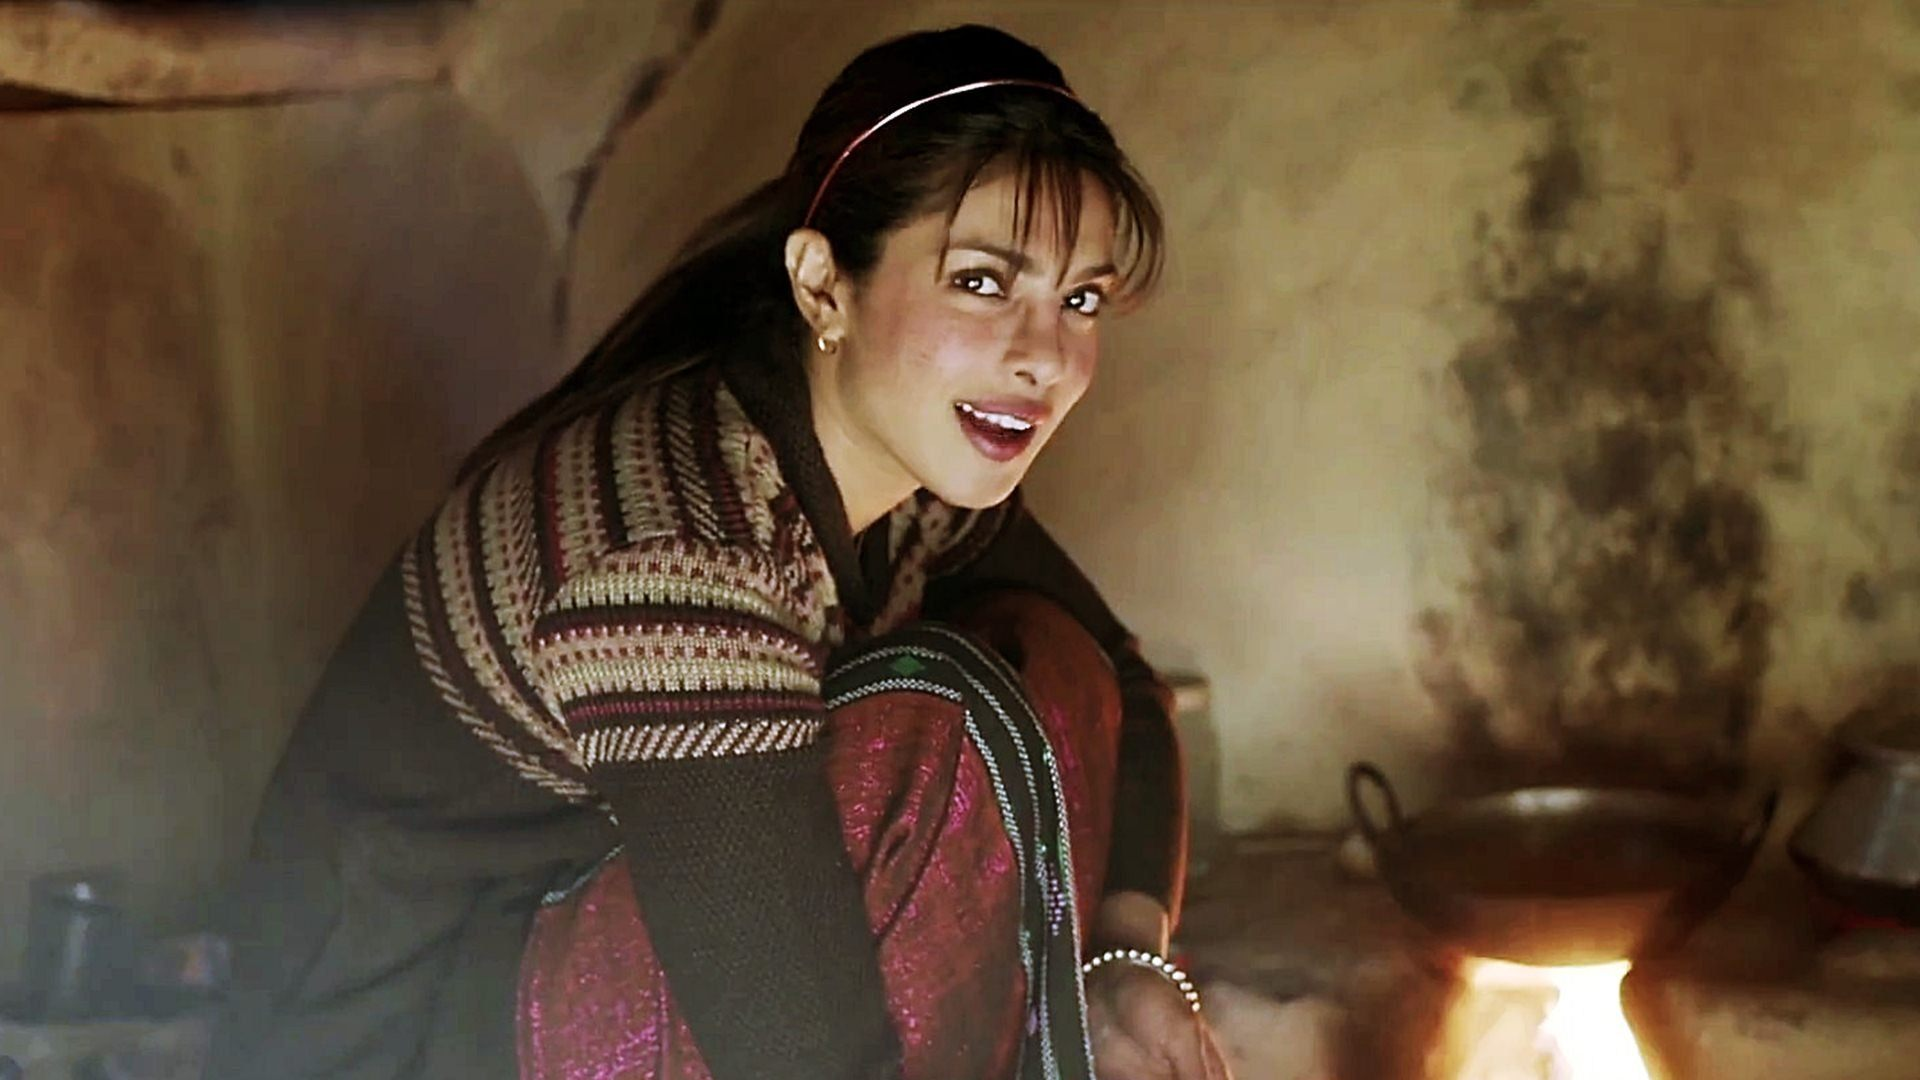 Priyanka Chopra - Mary Kom 2014 Latest Movie Wallpaper